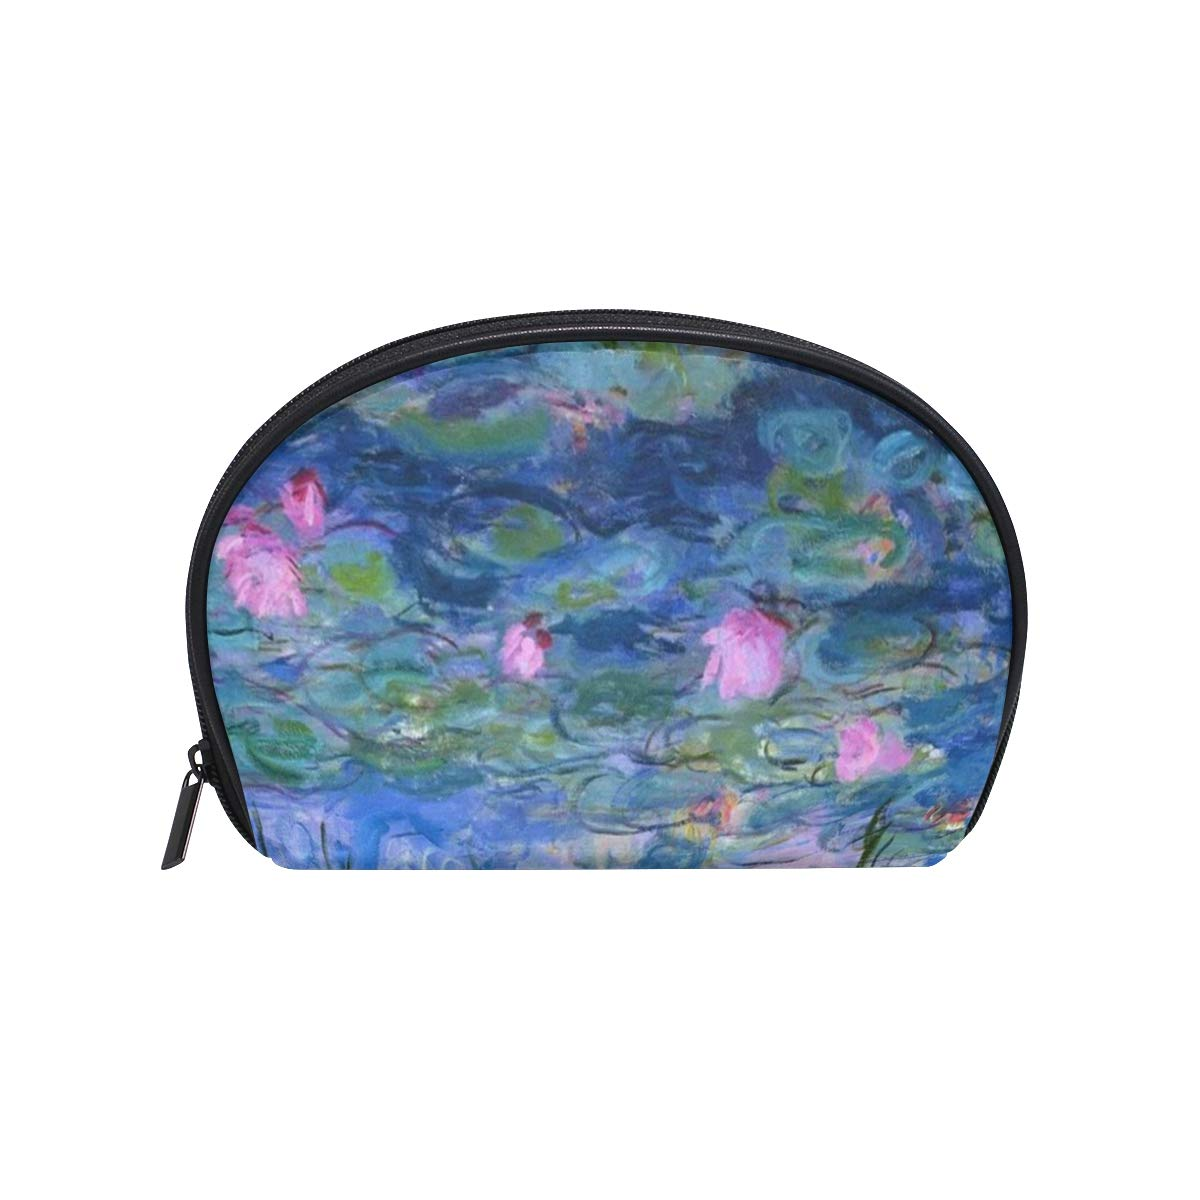 SLHFPX Makeup Organizer Monet Claude Water Lilies Oil Painting Womens Zip Toiletry Bag Large Case Cosmetic Bags